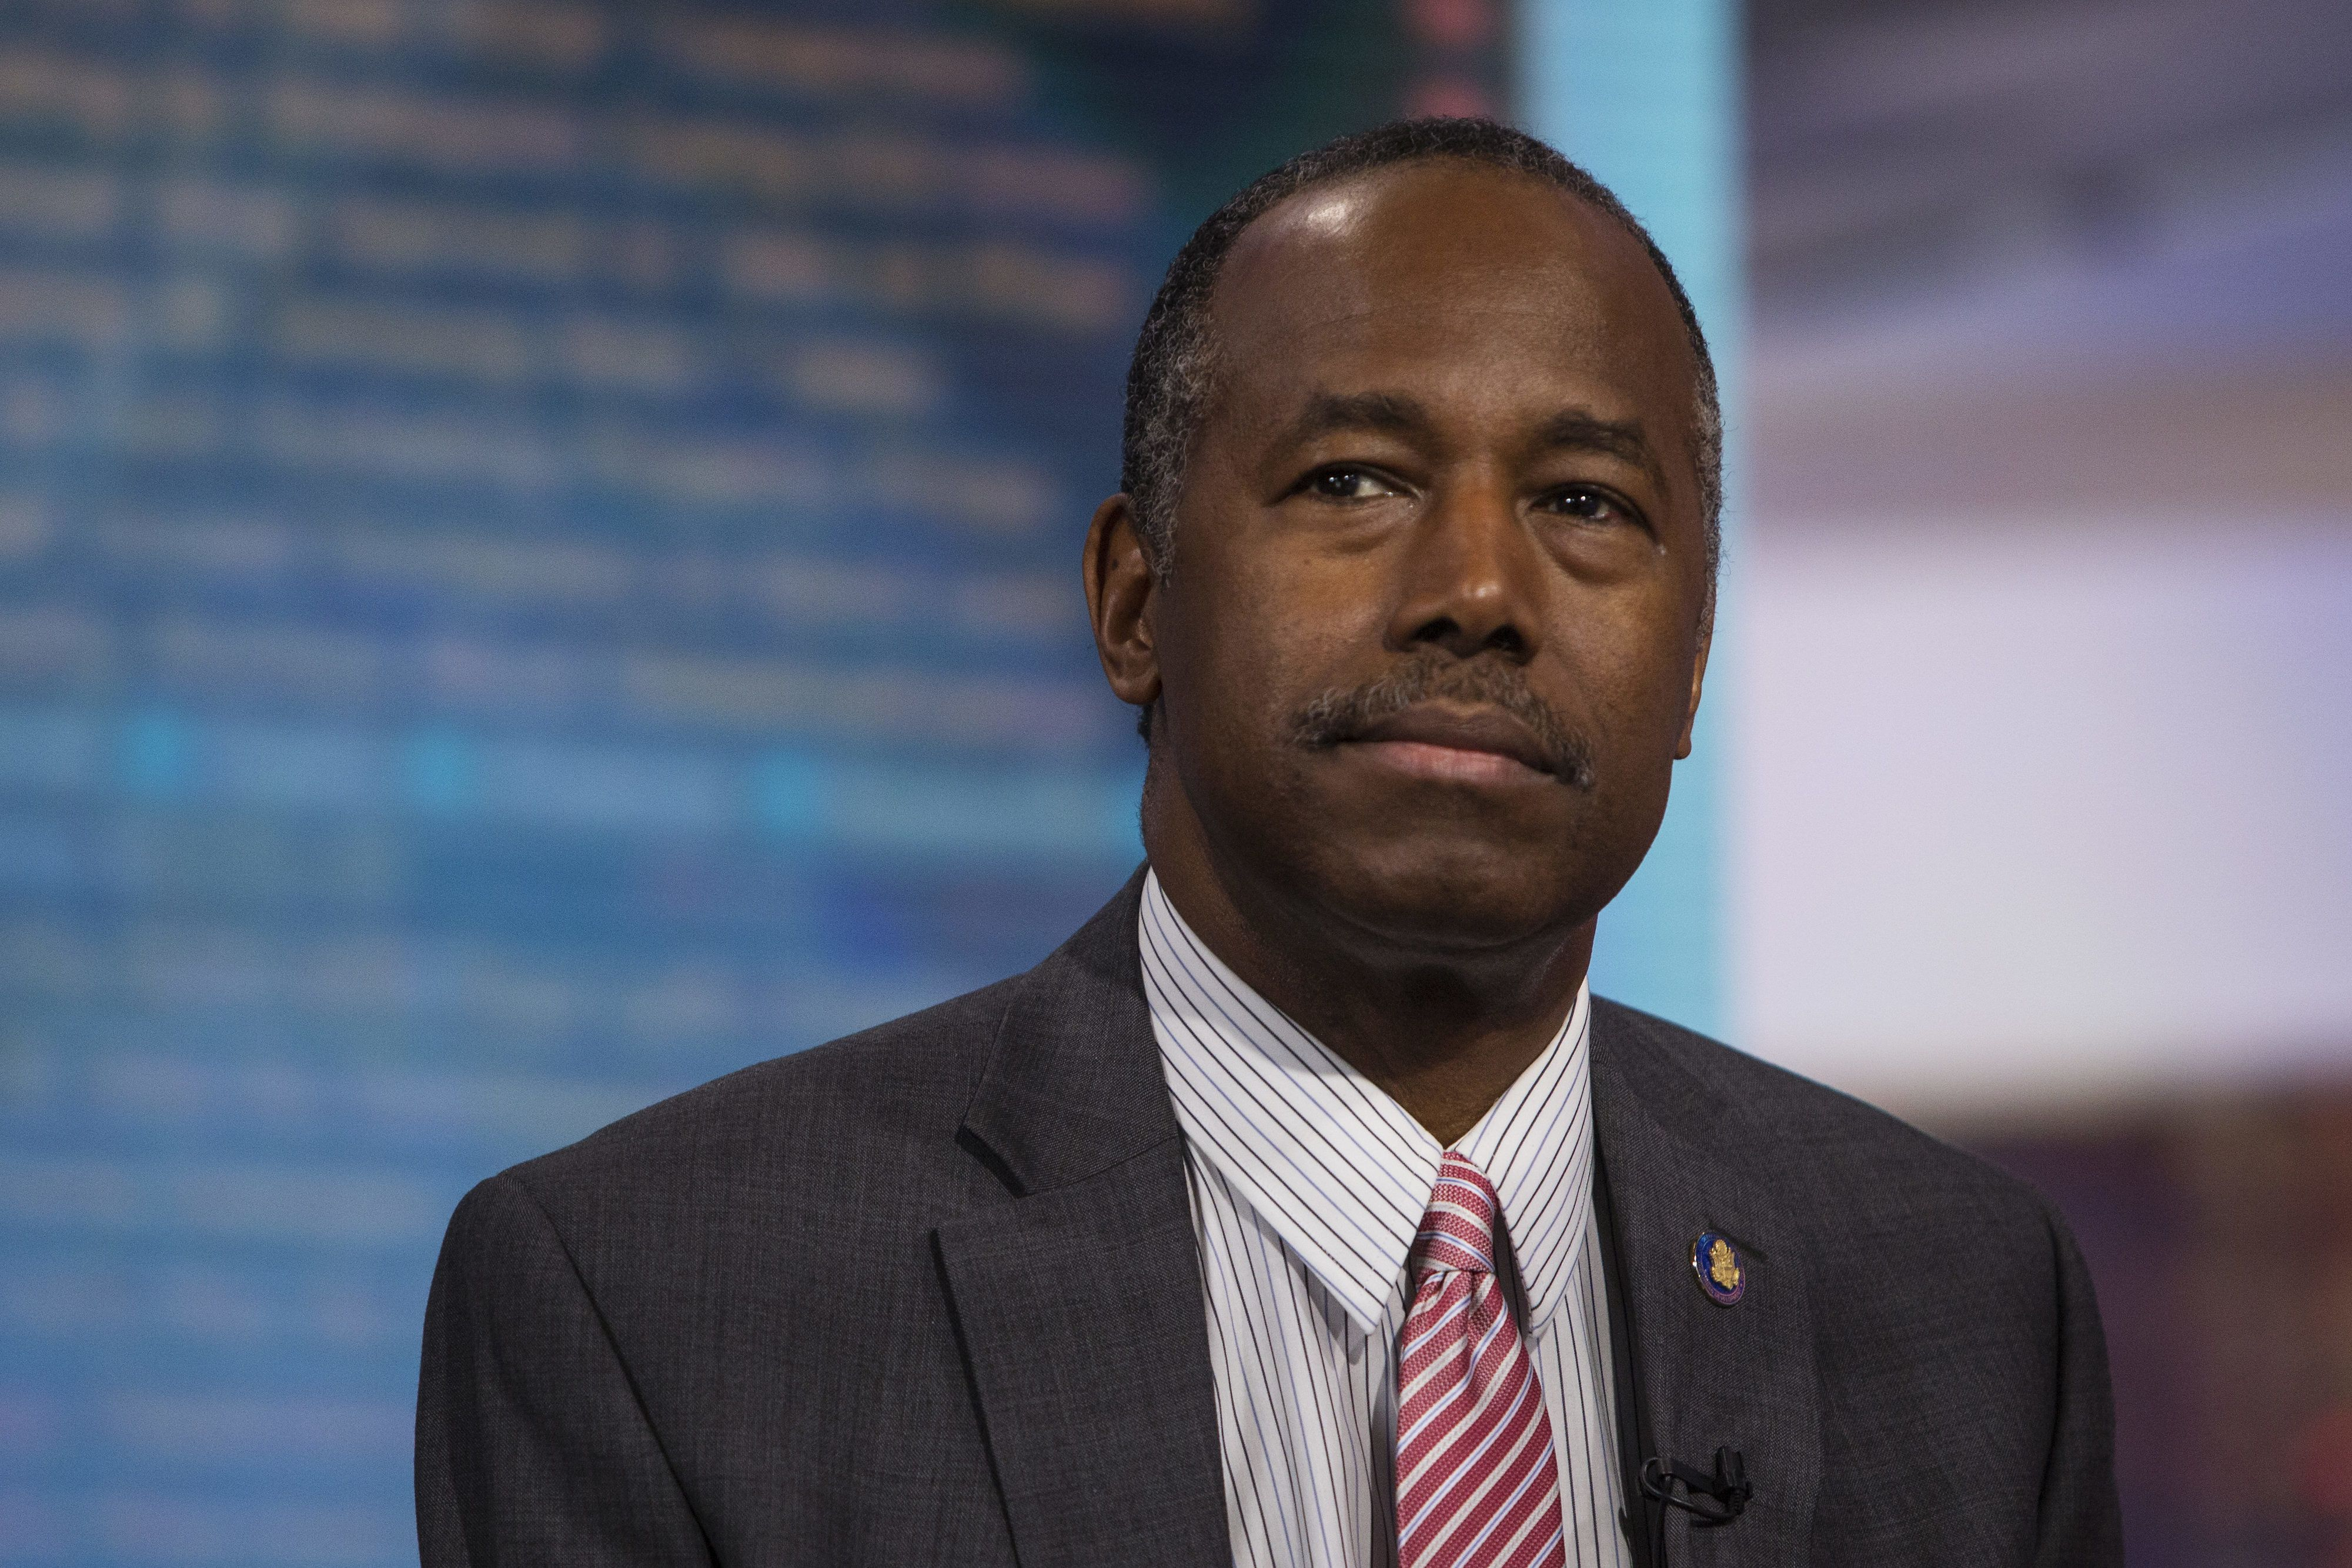 Ben Carson, secretary of Housing and Urban Development (HUD), listens during a Bloomberg Television interview in New York, U.S., on Tuesday, June 13, 2017. Carson discussed ideas being developed to open up home ownership in the United States with a focus on millennials burdened with student debt. Photographer: Victor J. Blue/Bloomberg via Getty Images